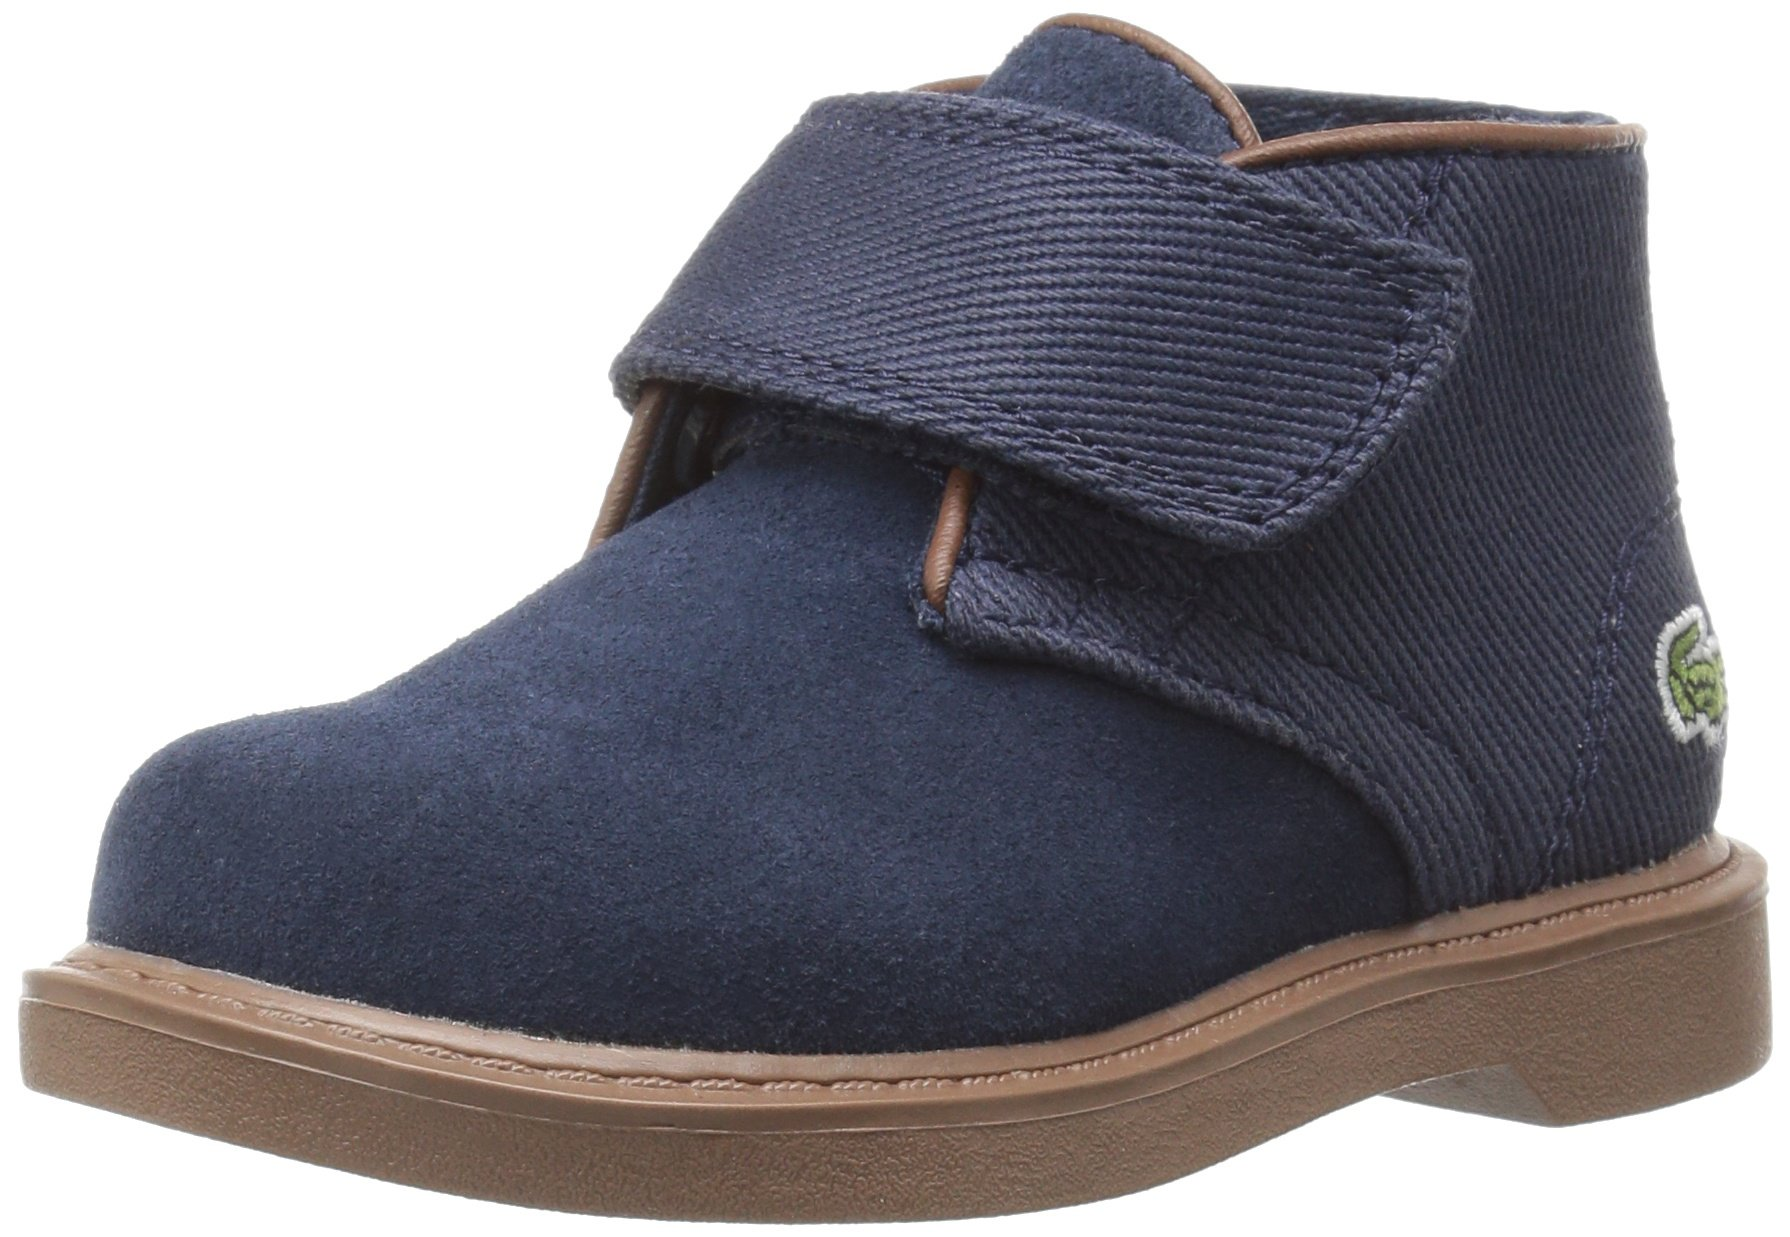 Lacoste Kids' Sherbrook 316 1 CAI NVY Bootie, Navy, 8 M US Toddler